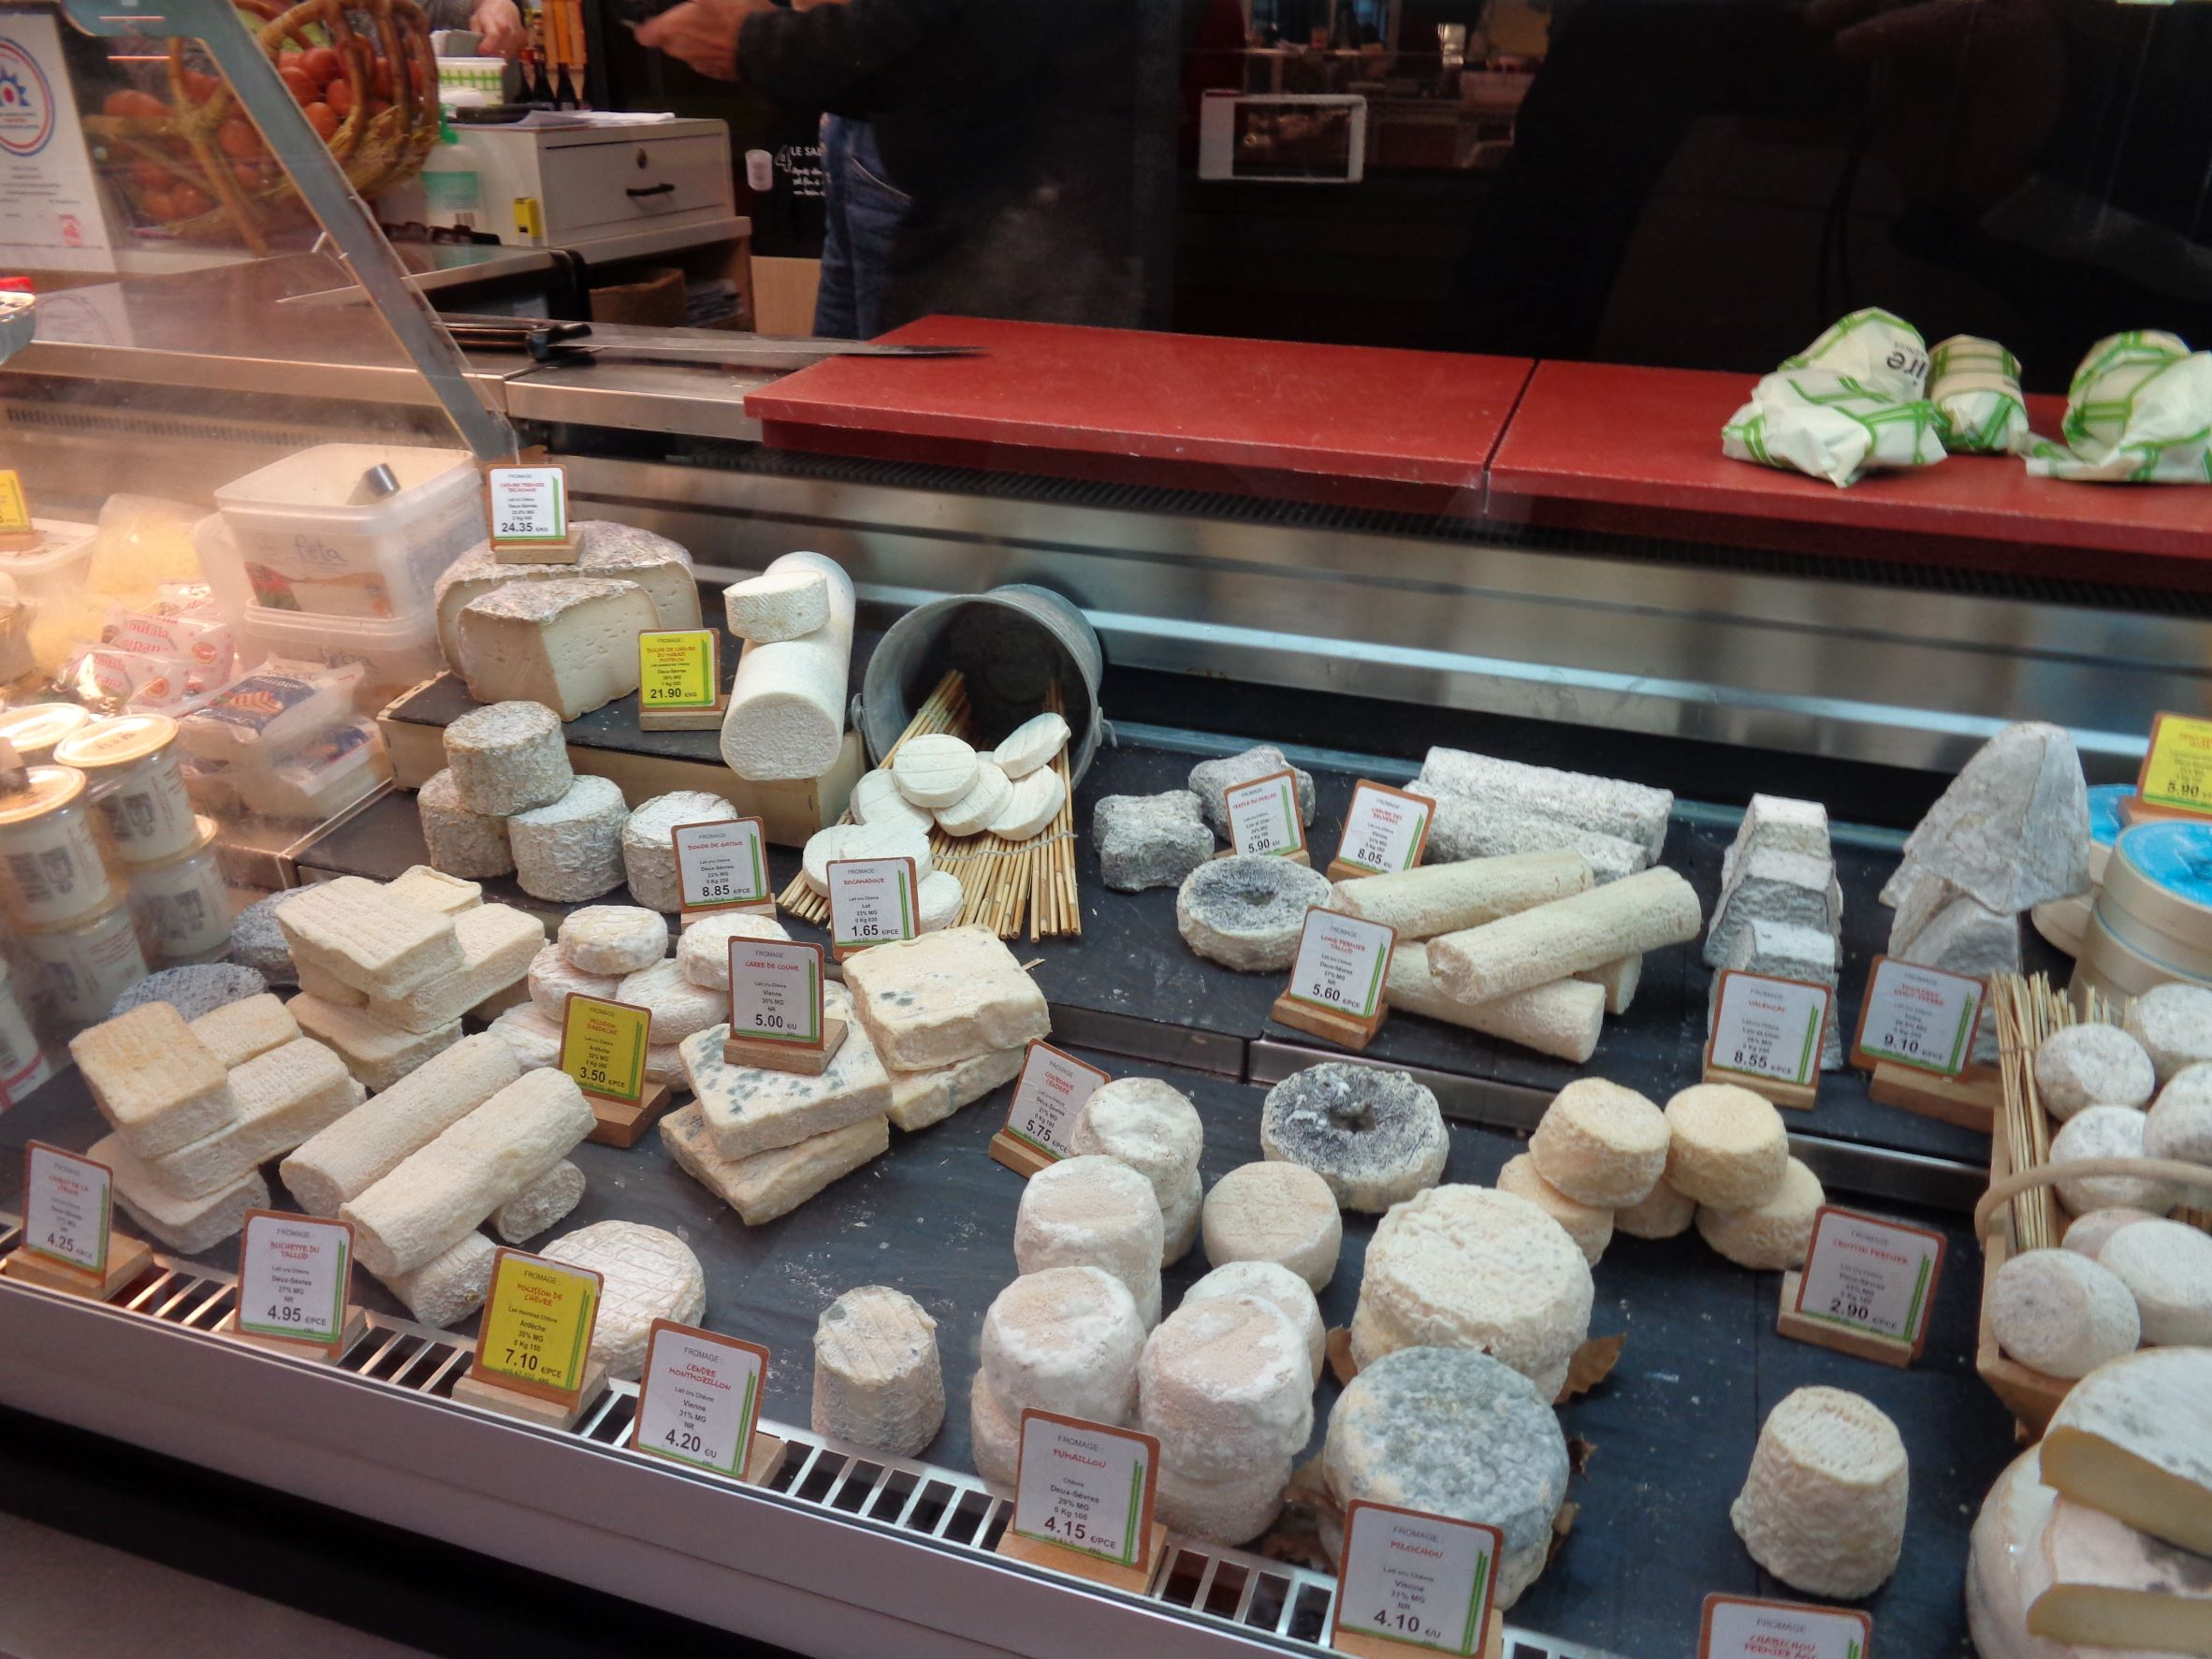 Poitiers marche notre dame goat cheeses purchase oct21